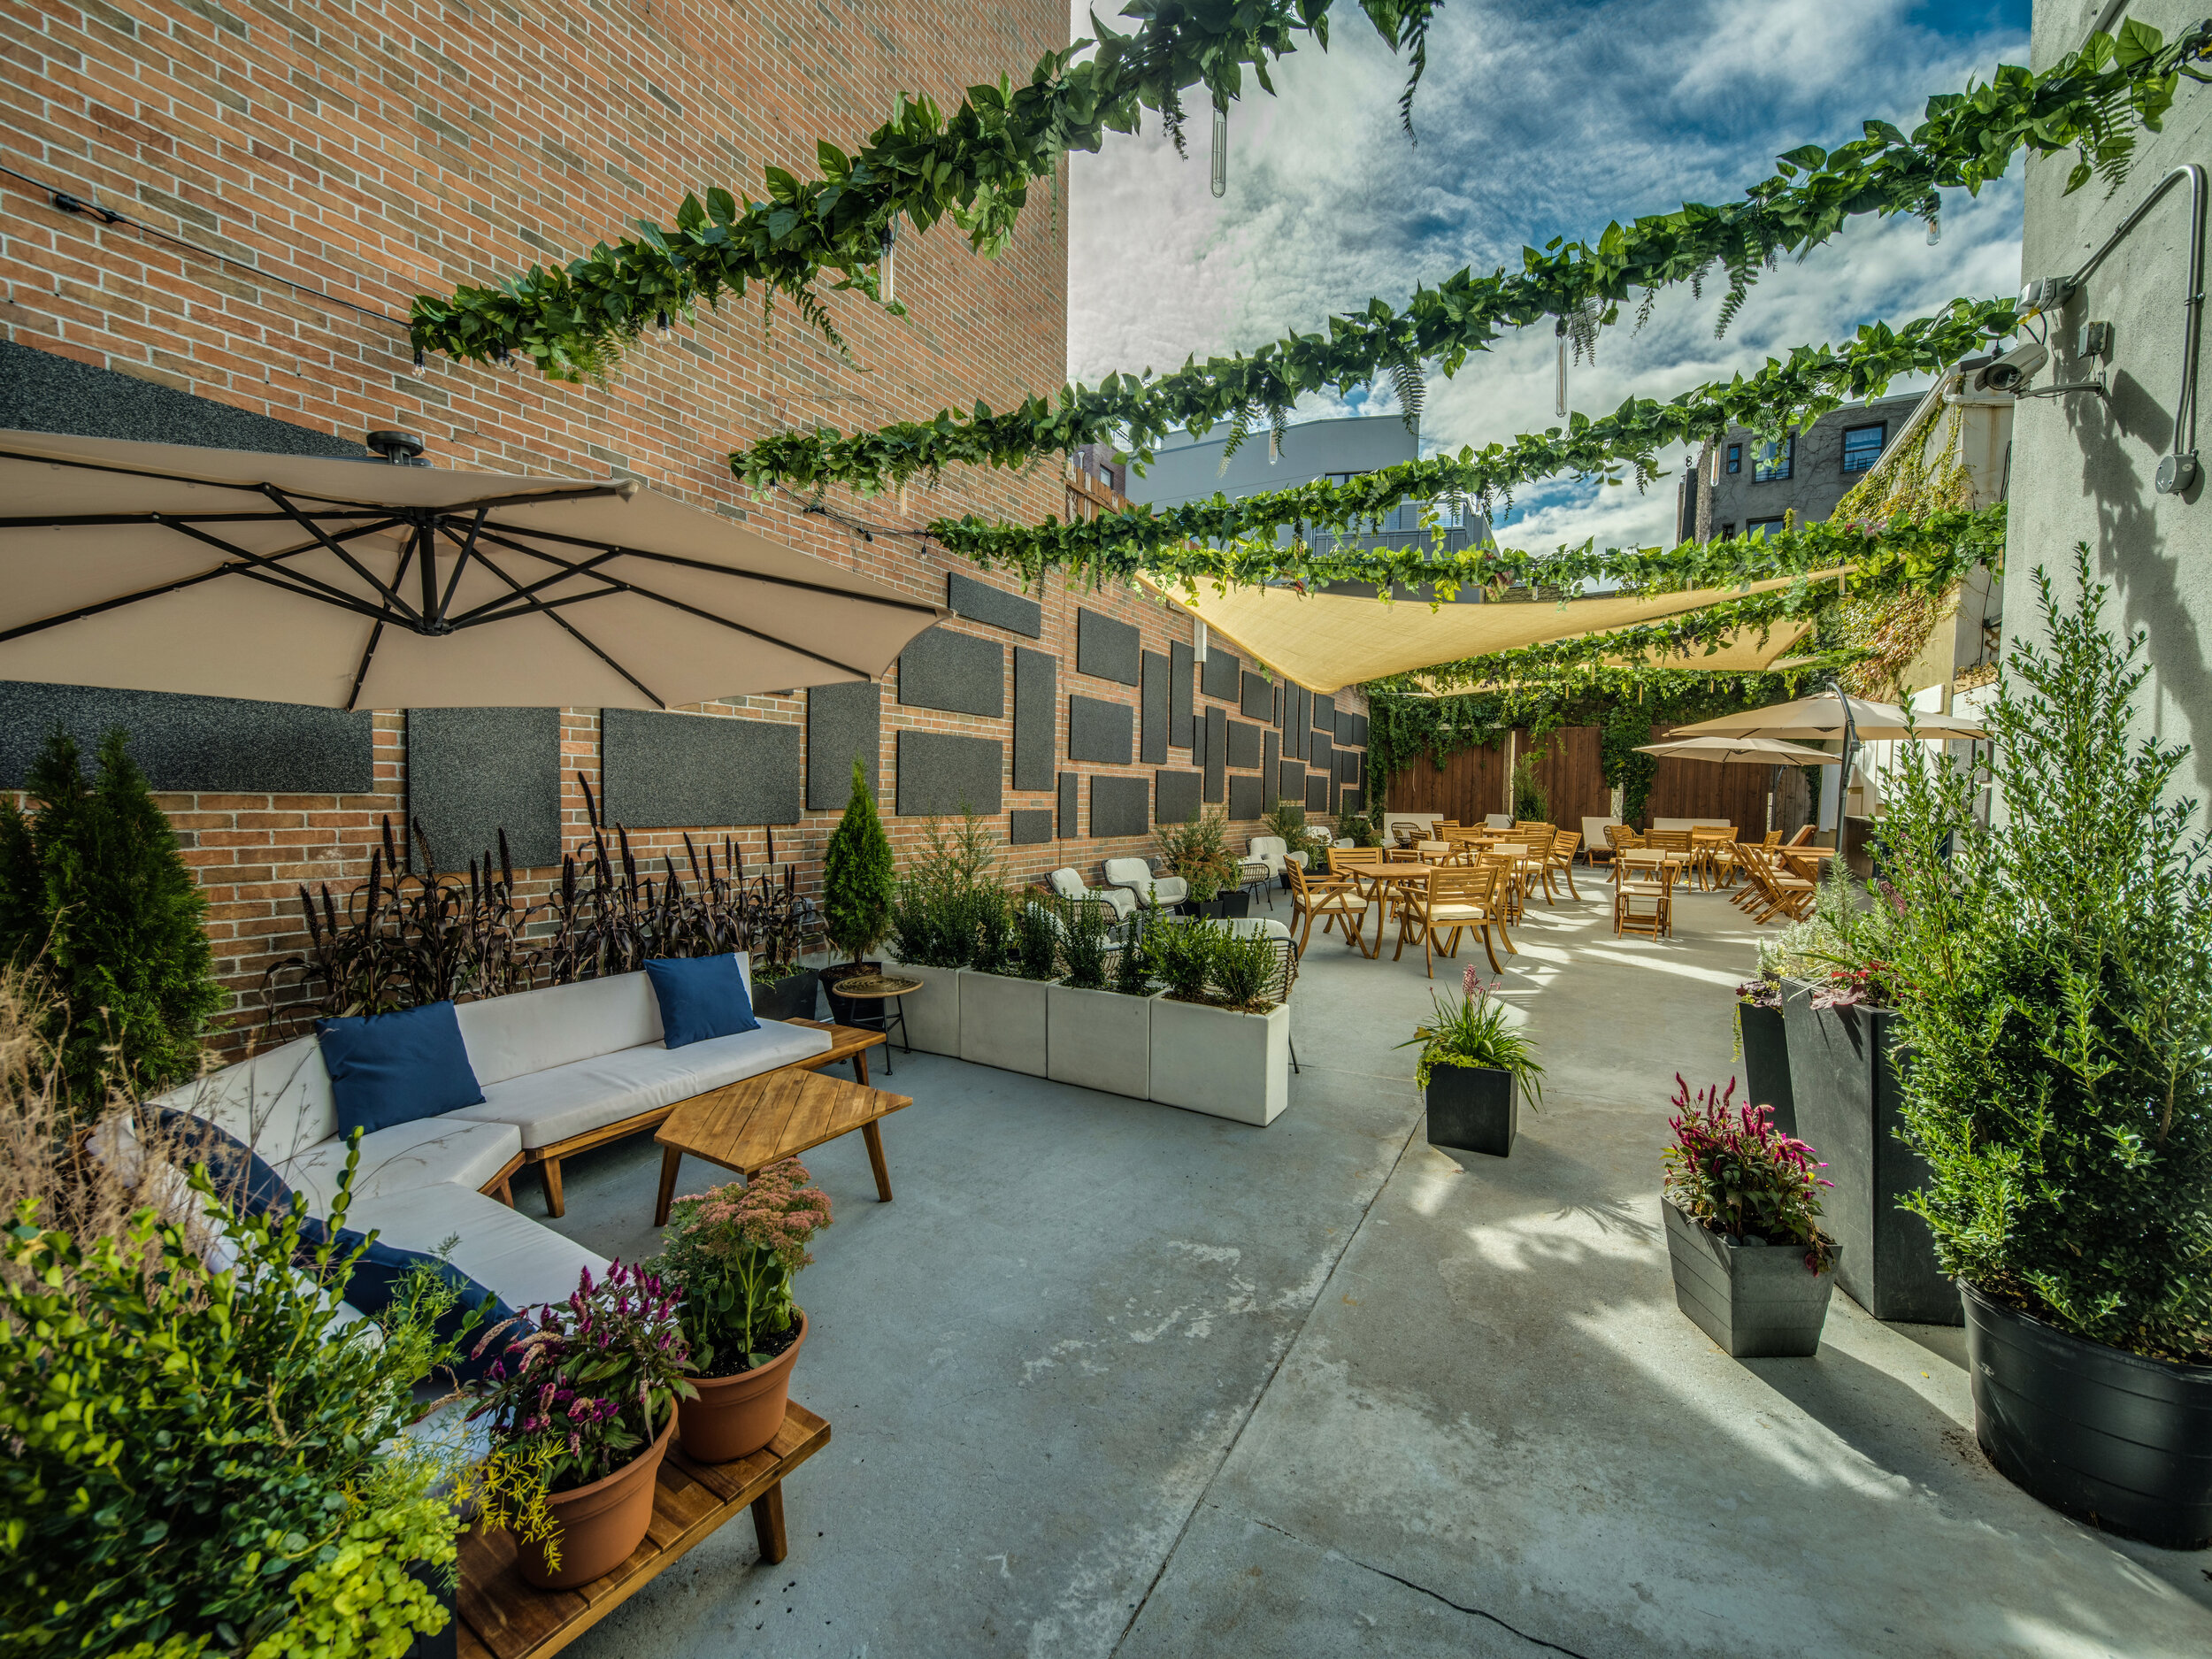 Sun-drenched outdoor patio with ample seating and a relaxed ambiance. Photo Credit - Oleg March